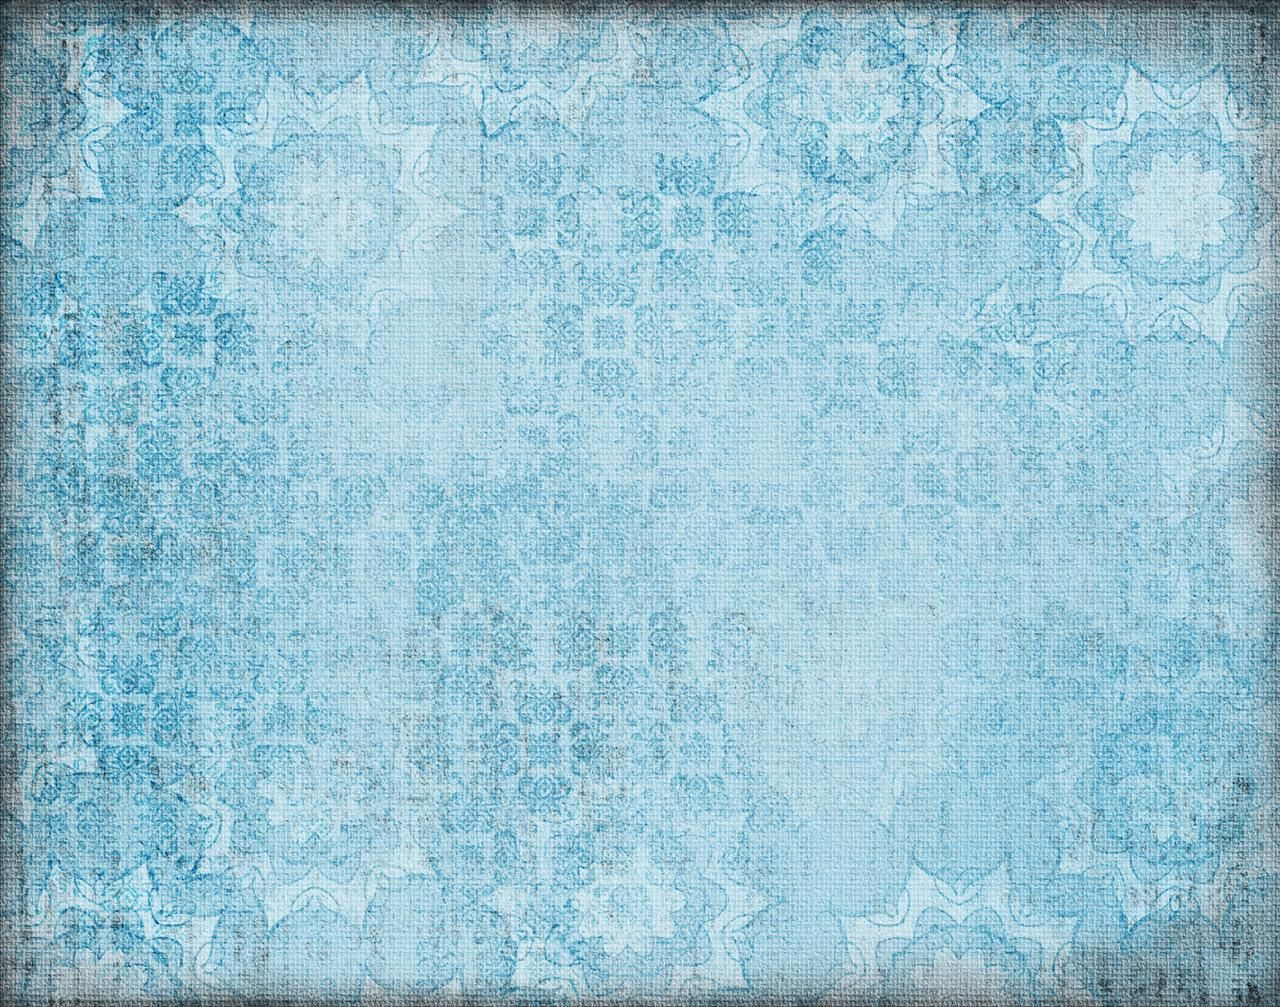 Book Backgrounds Use This Background In Your Picaboo Photo Book Background Hd Wallpaper Background Pictures Background